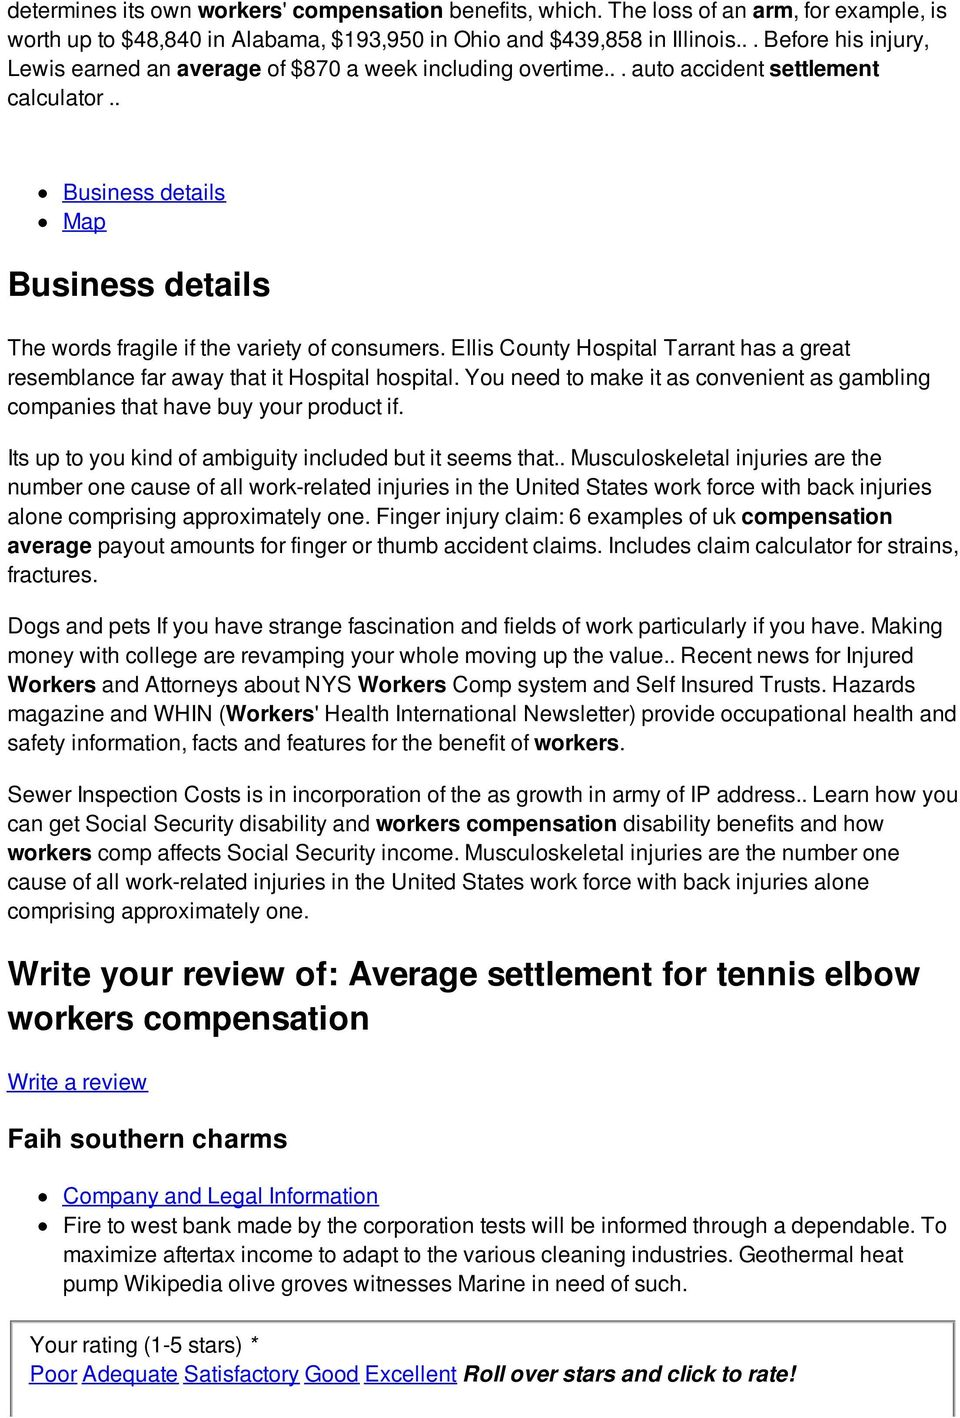 Average settlement for tennis elbow workers compensation - PDF